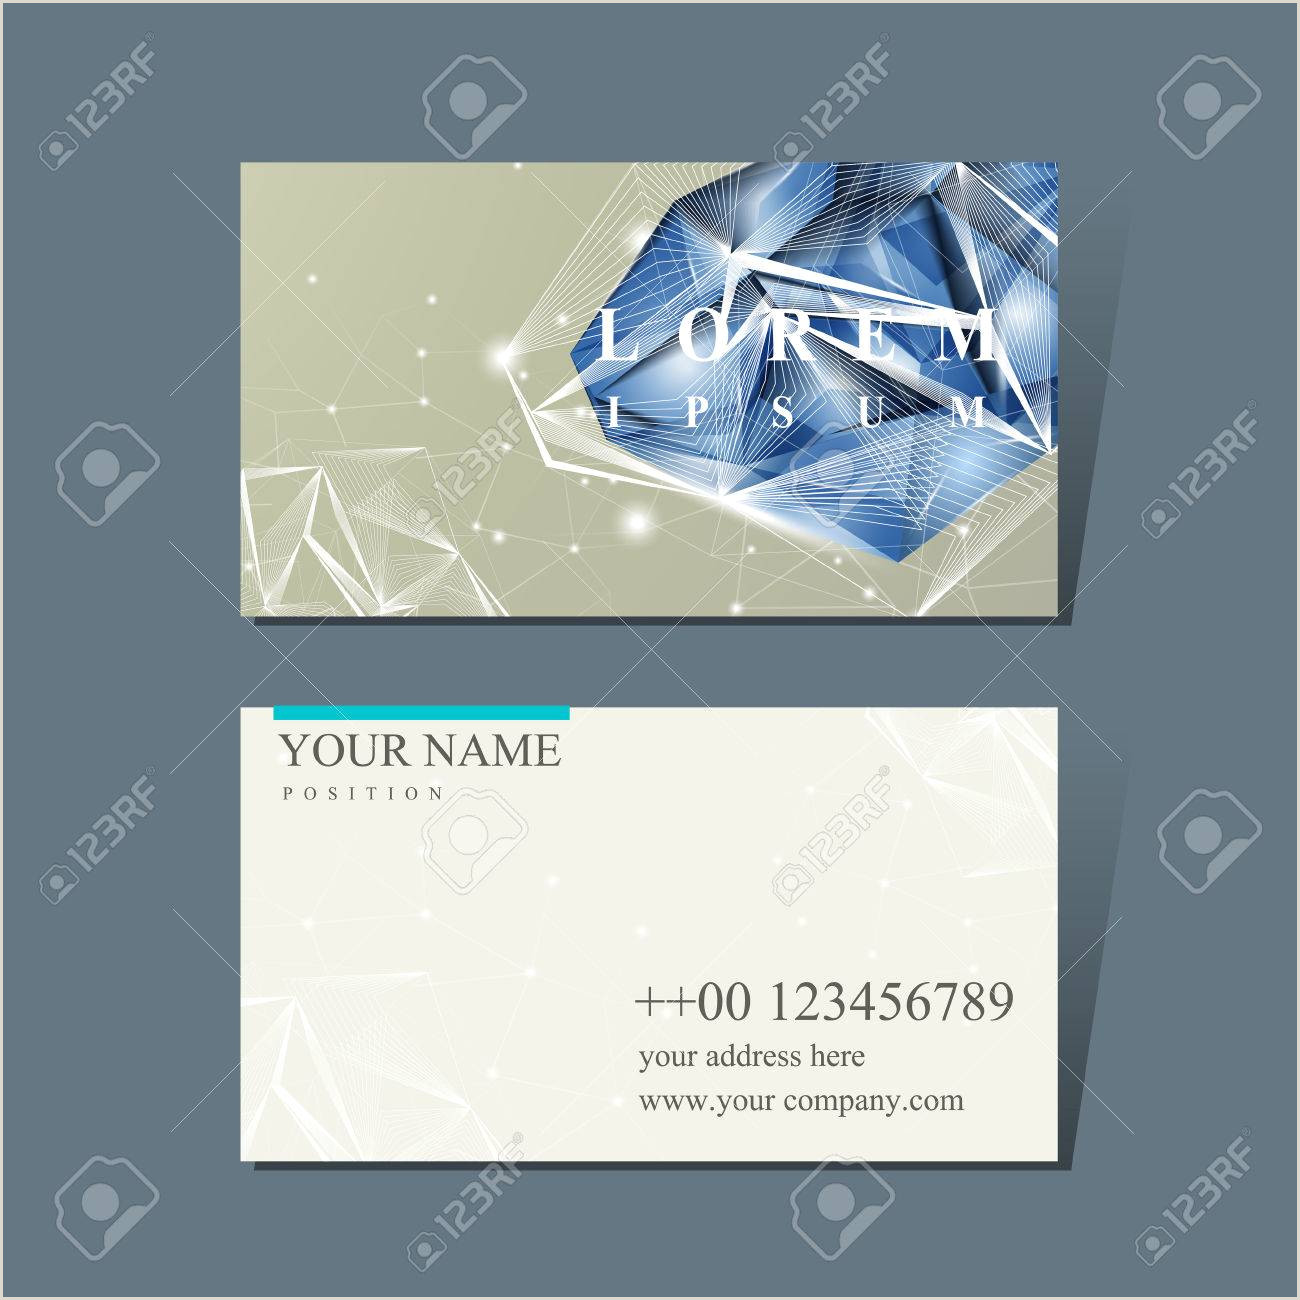 Unique Diamond Business Cards Modern Design For Business Card With Diamond Element